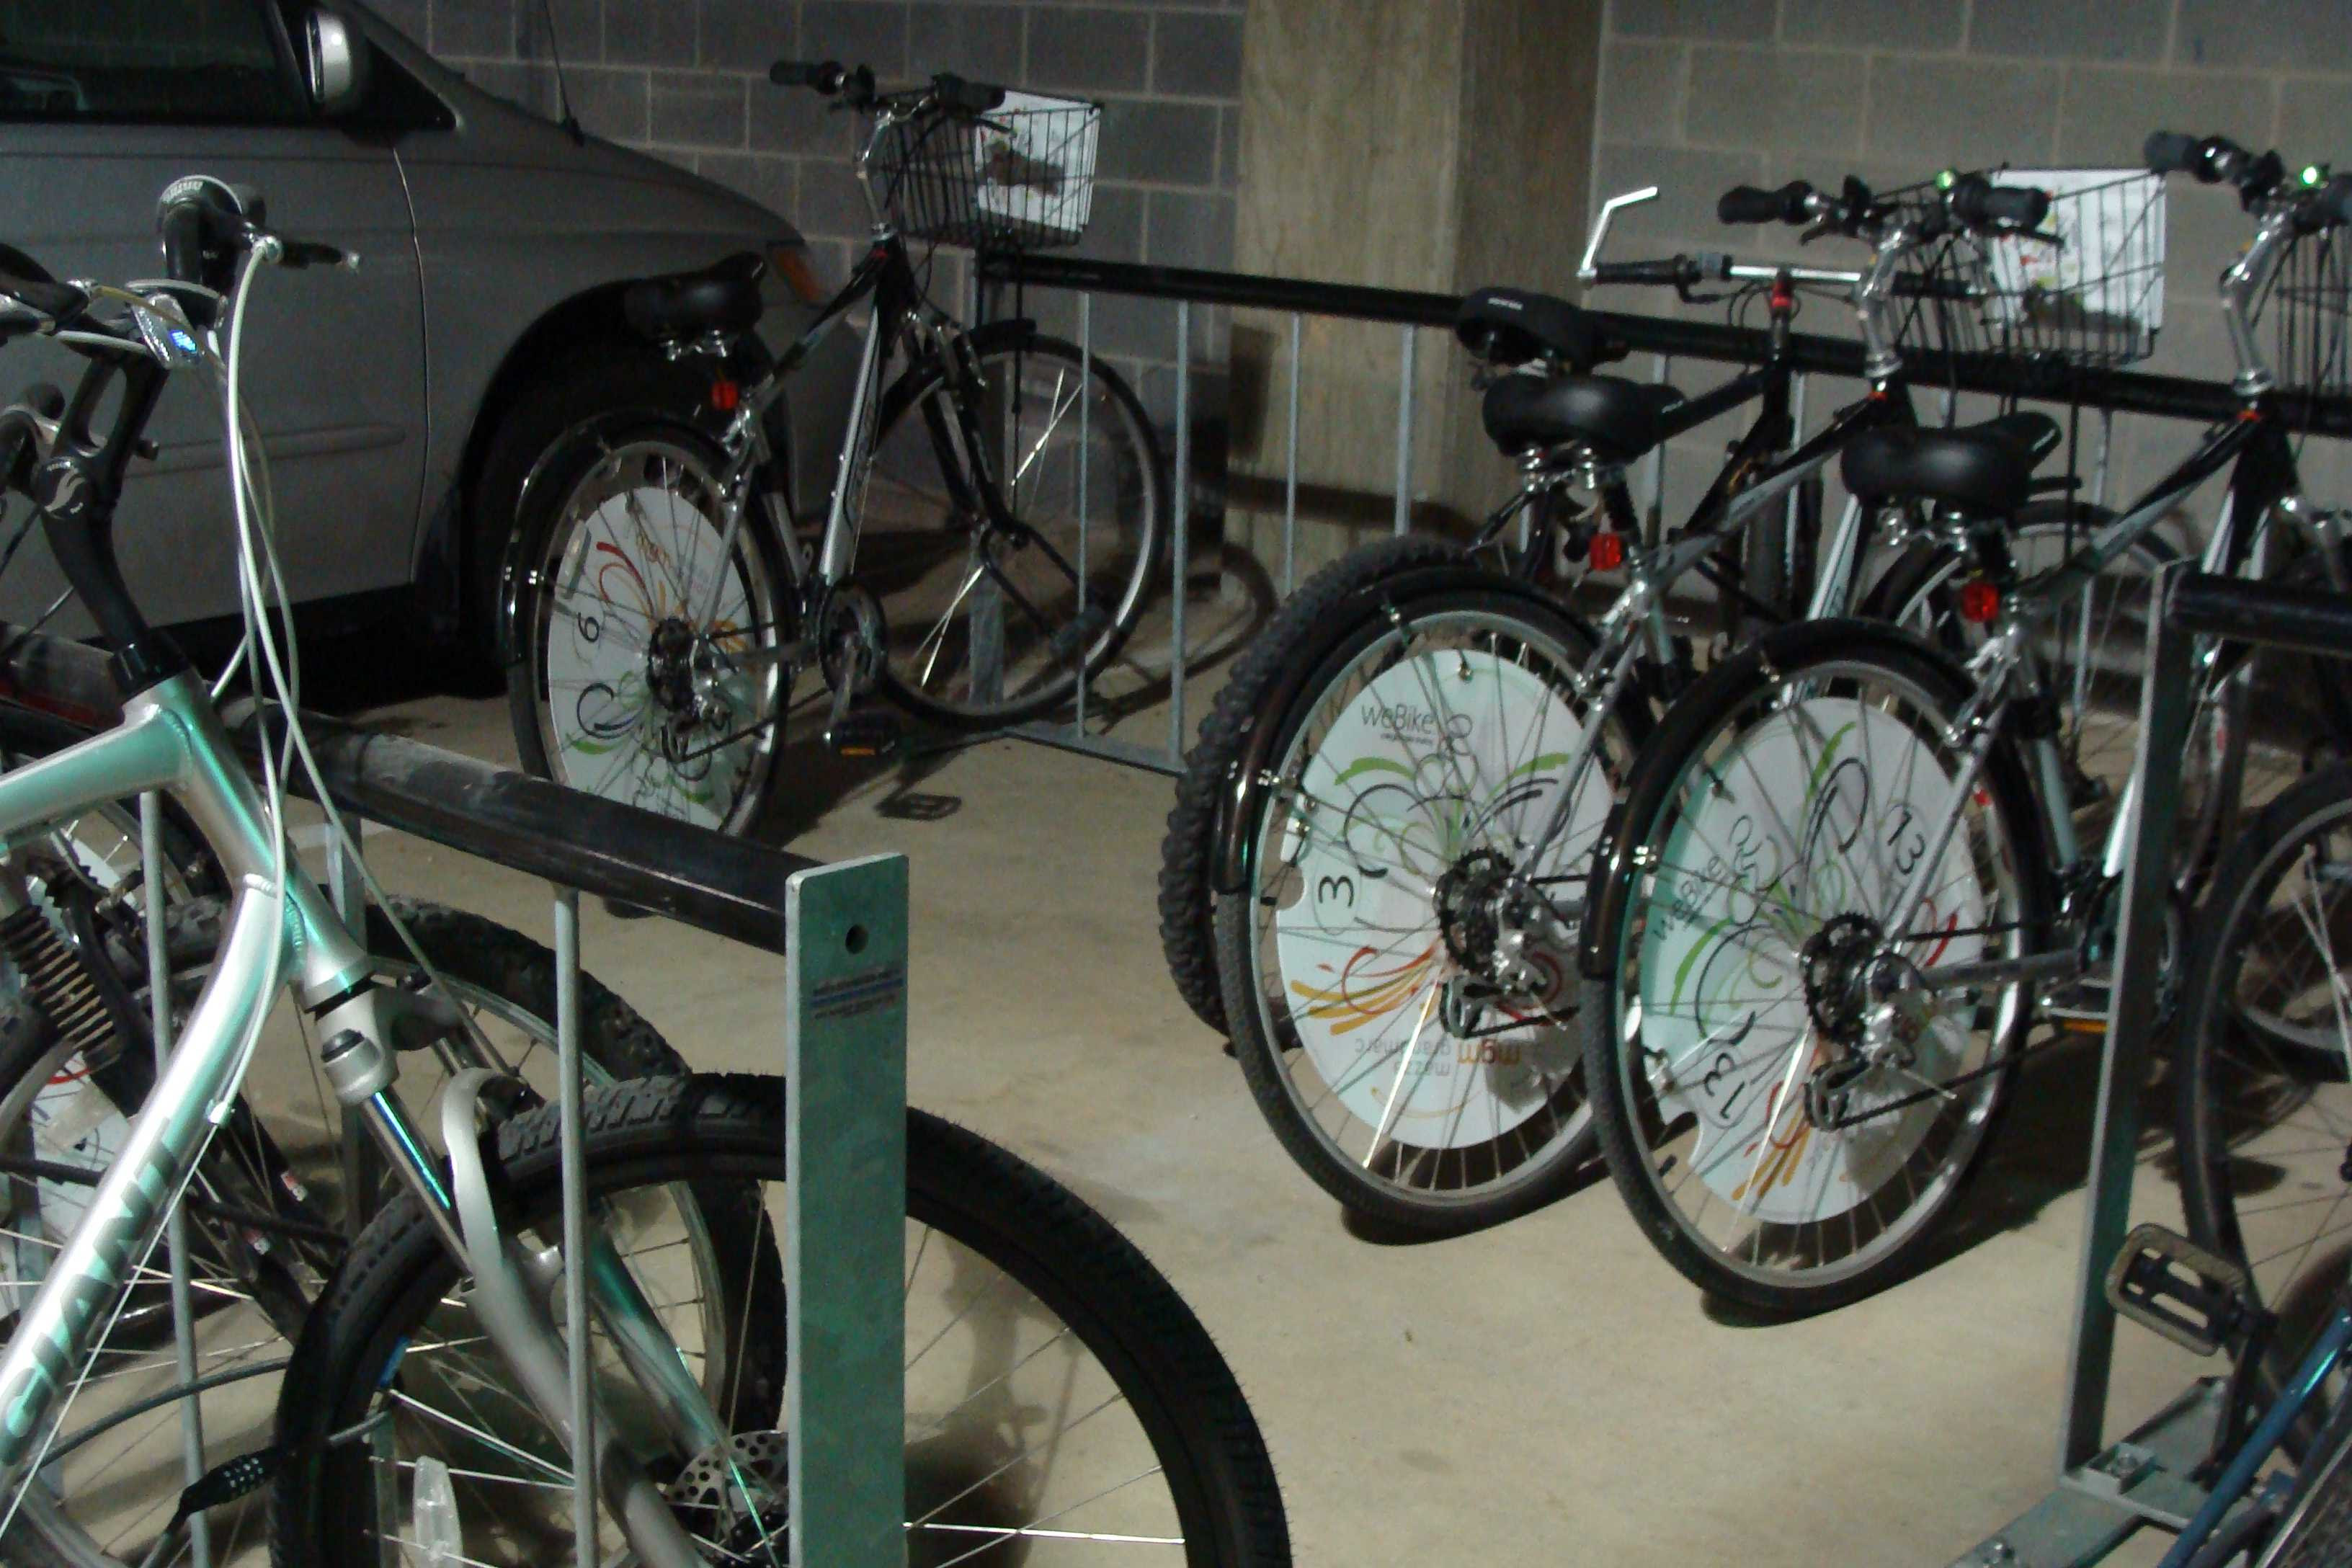 """weBike uses SMS texting to identify bikes and rotate lock combinations, minimizing bike share costs and the need for """"stations."""" Photo credit: weBike."""